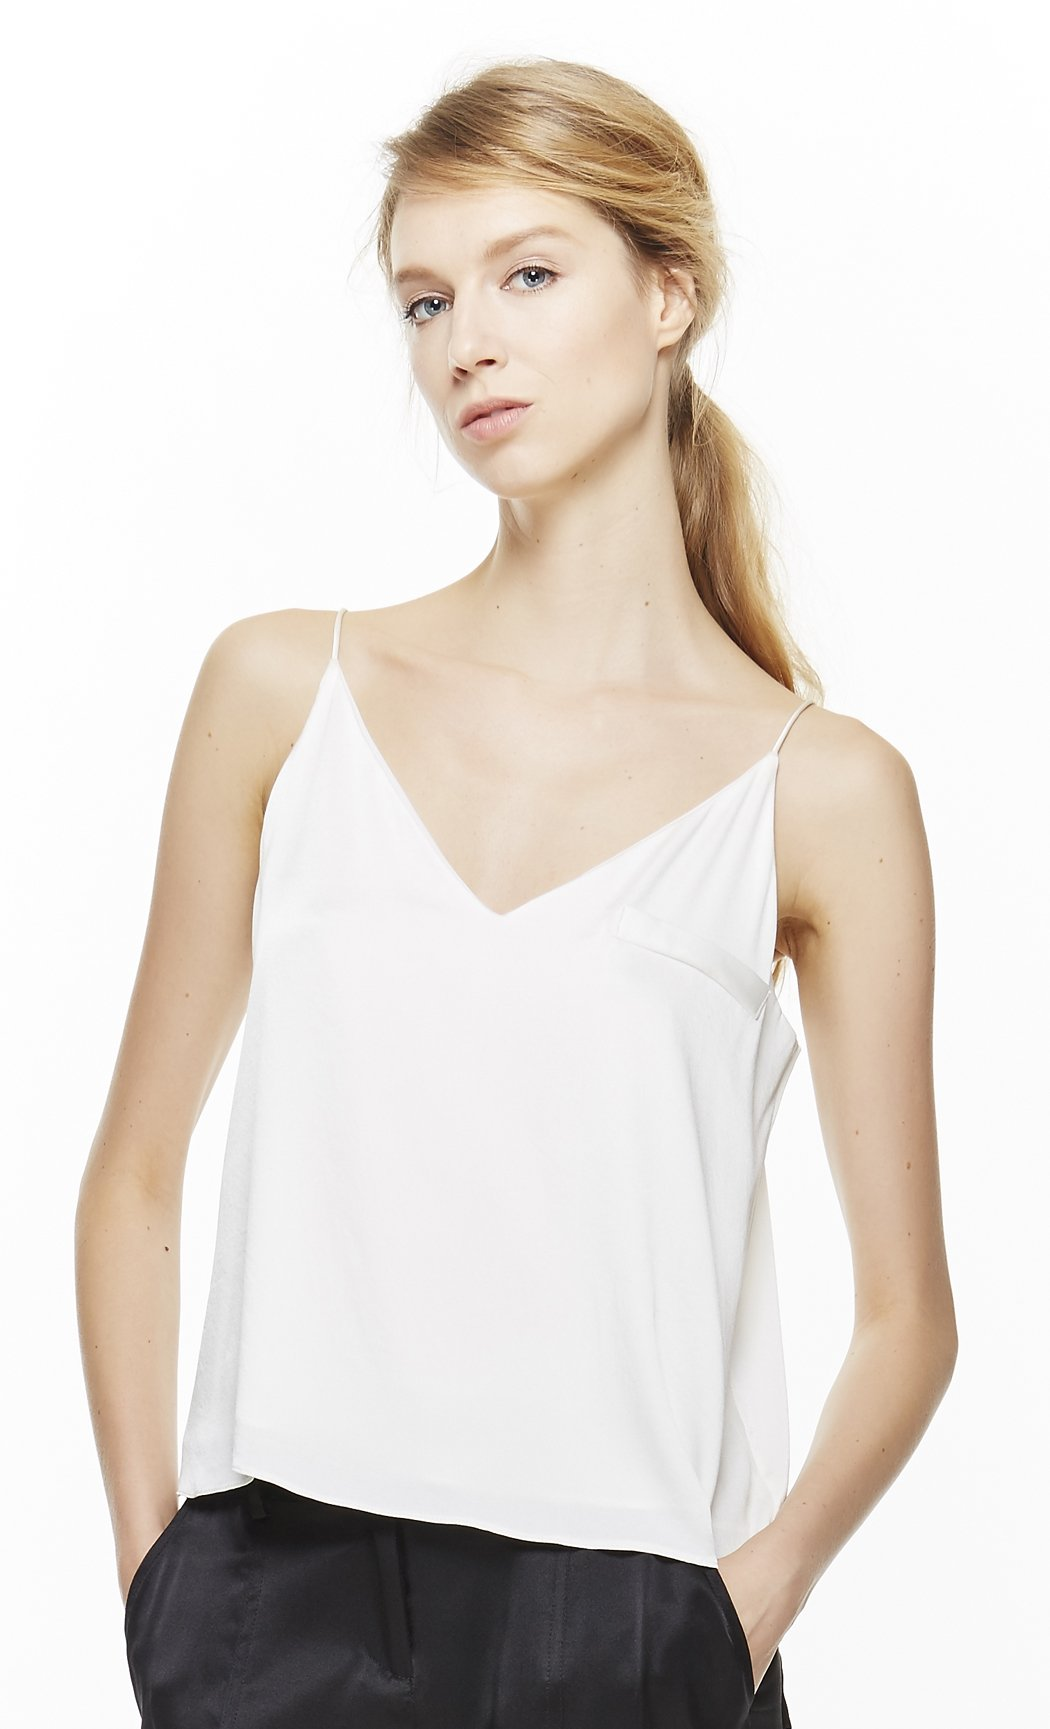 4 Corners of a Circle Women's Camisole Large Off-white by 4 corners of a circle